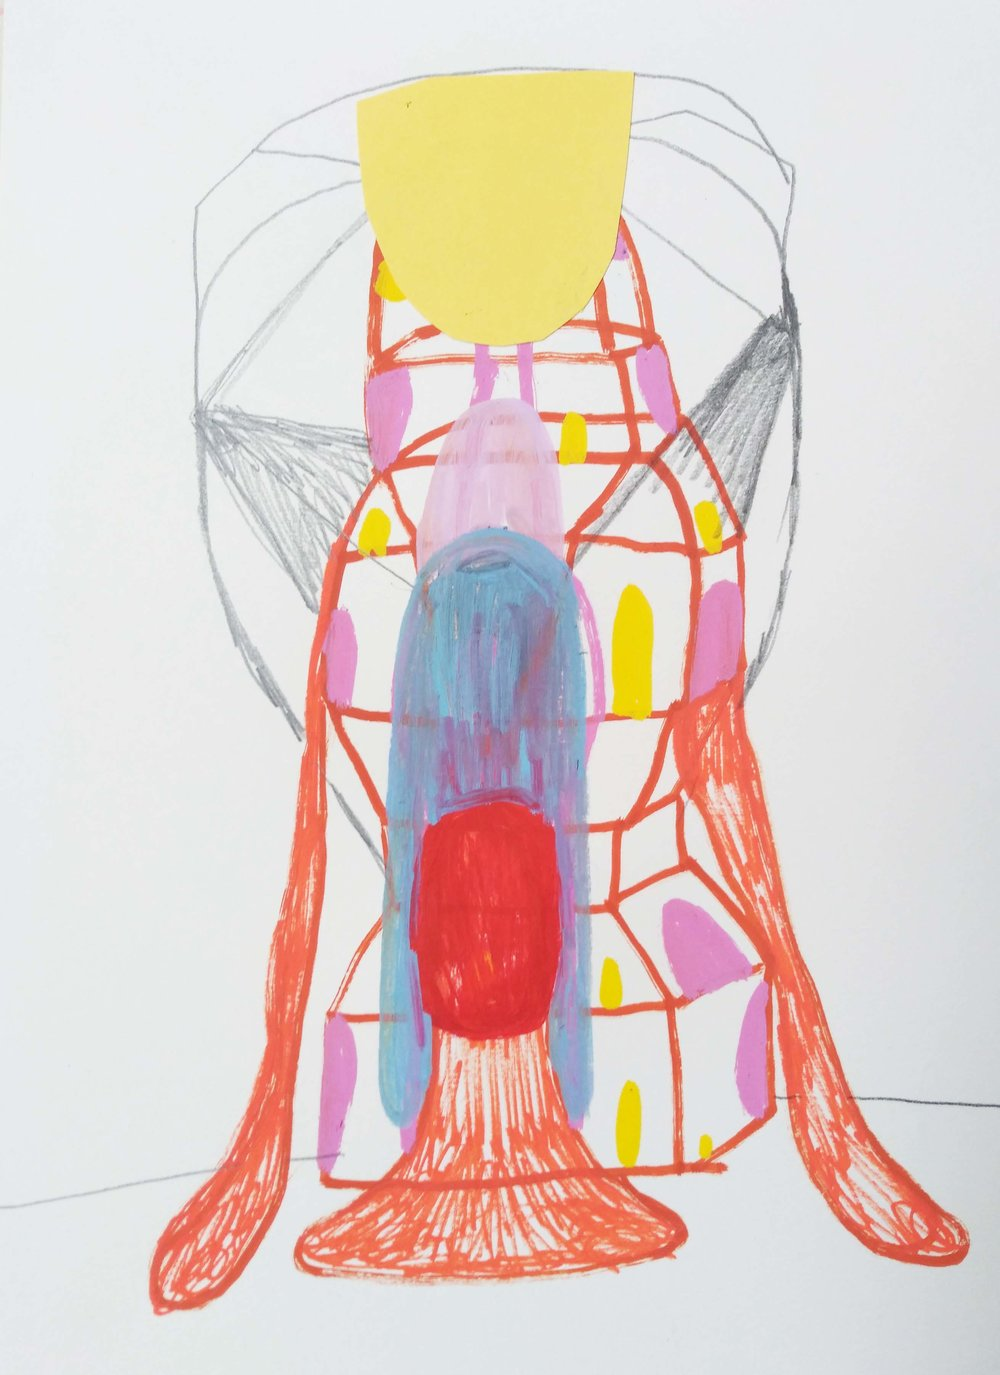 """Marie J.Engelsvold. """"no fear"""" 29,7 x 21 cm. Acrylic marker, pencil and paper cuts on paper. 2019"""